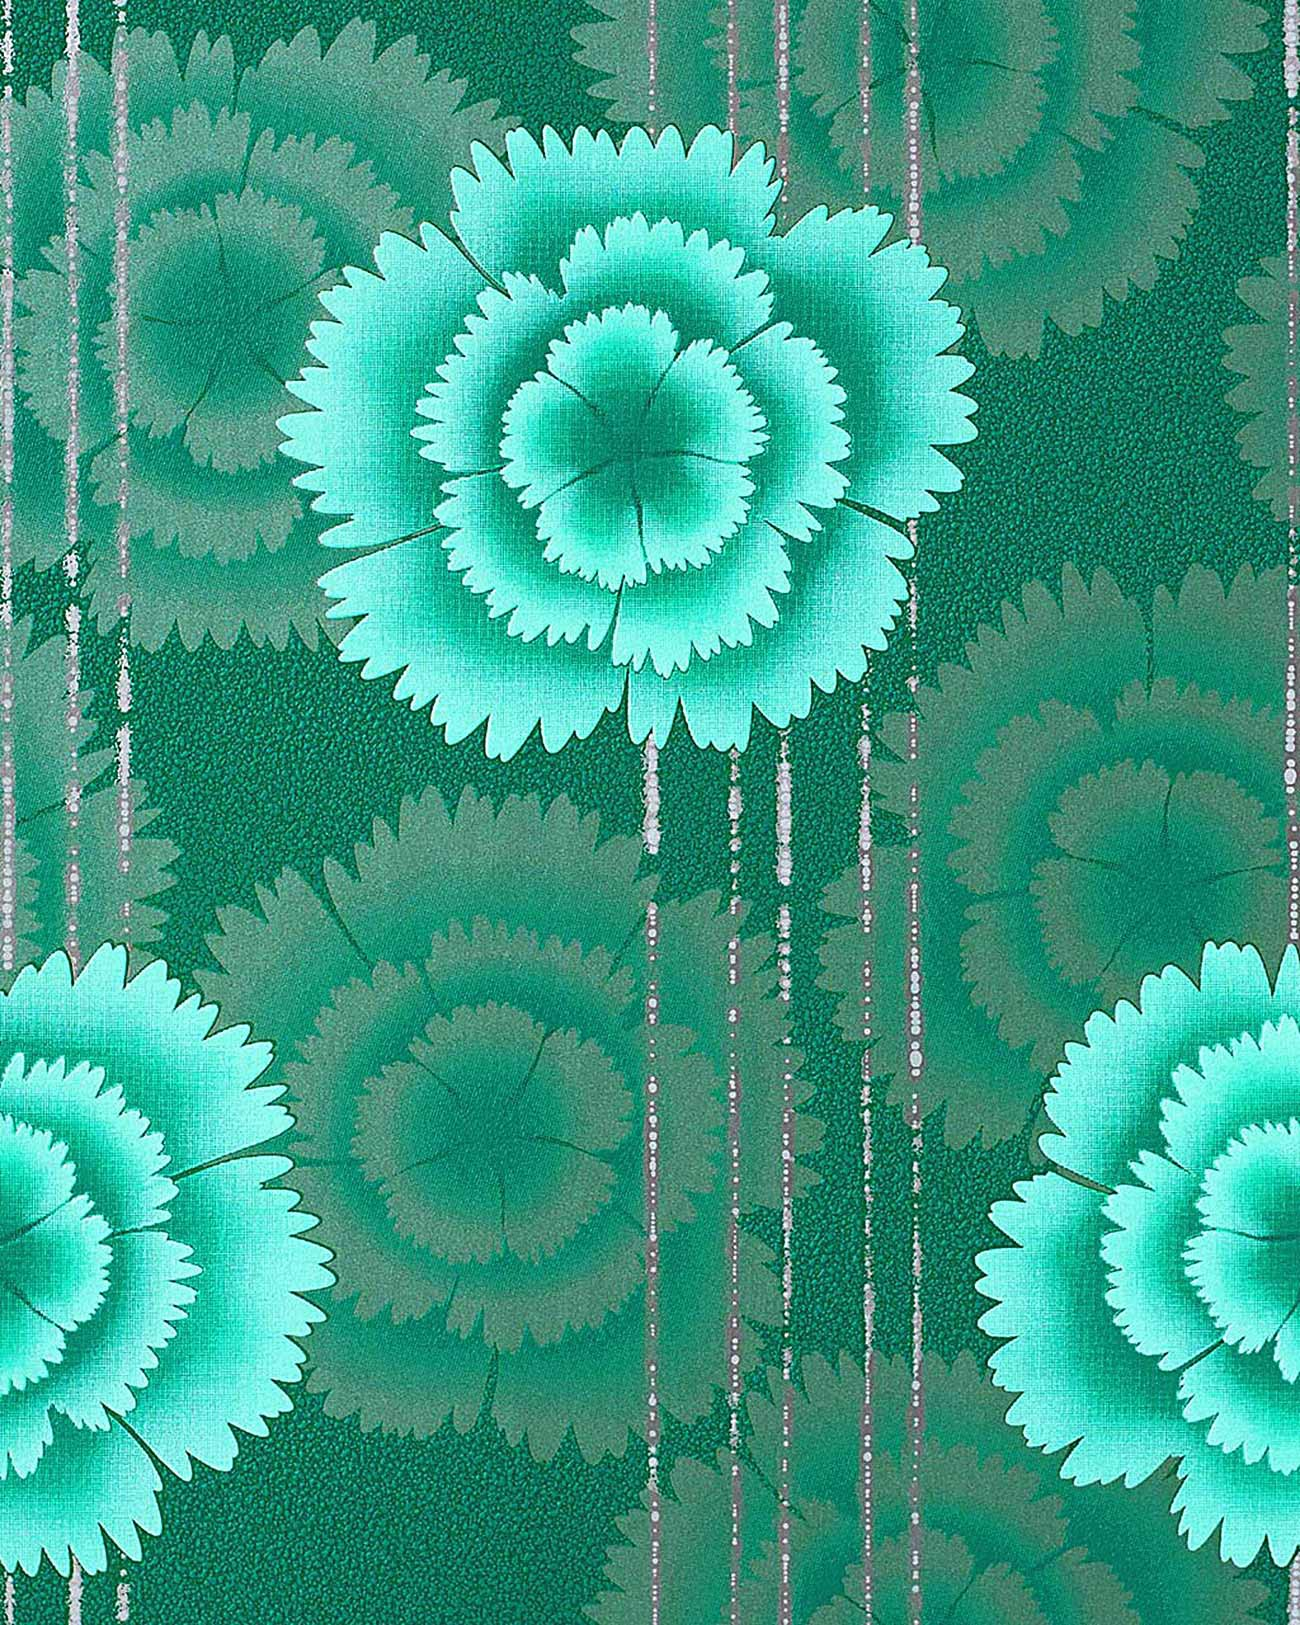 Free Download 25 Wallpaper Retro 70s Flowers Grey Turquoise Blue